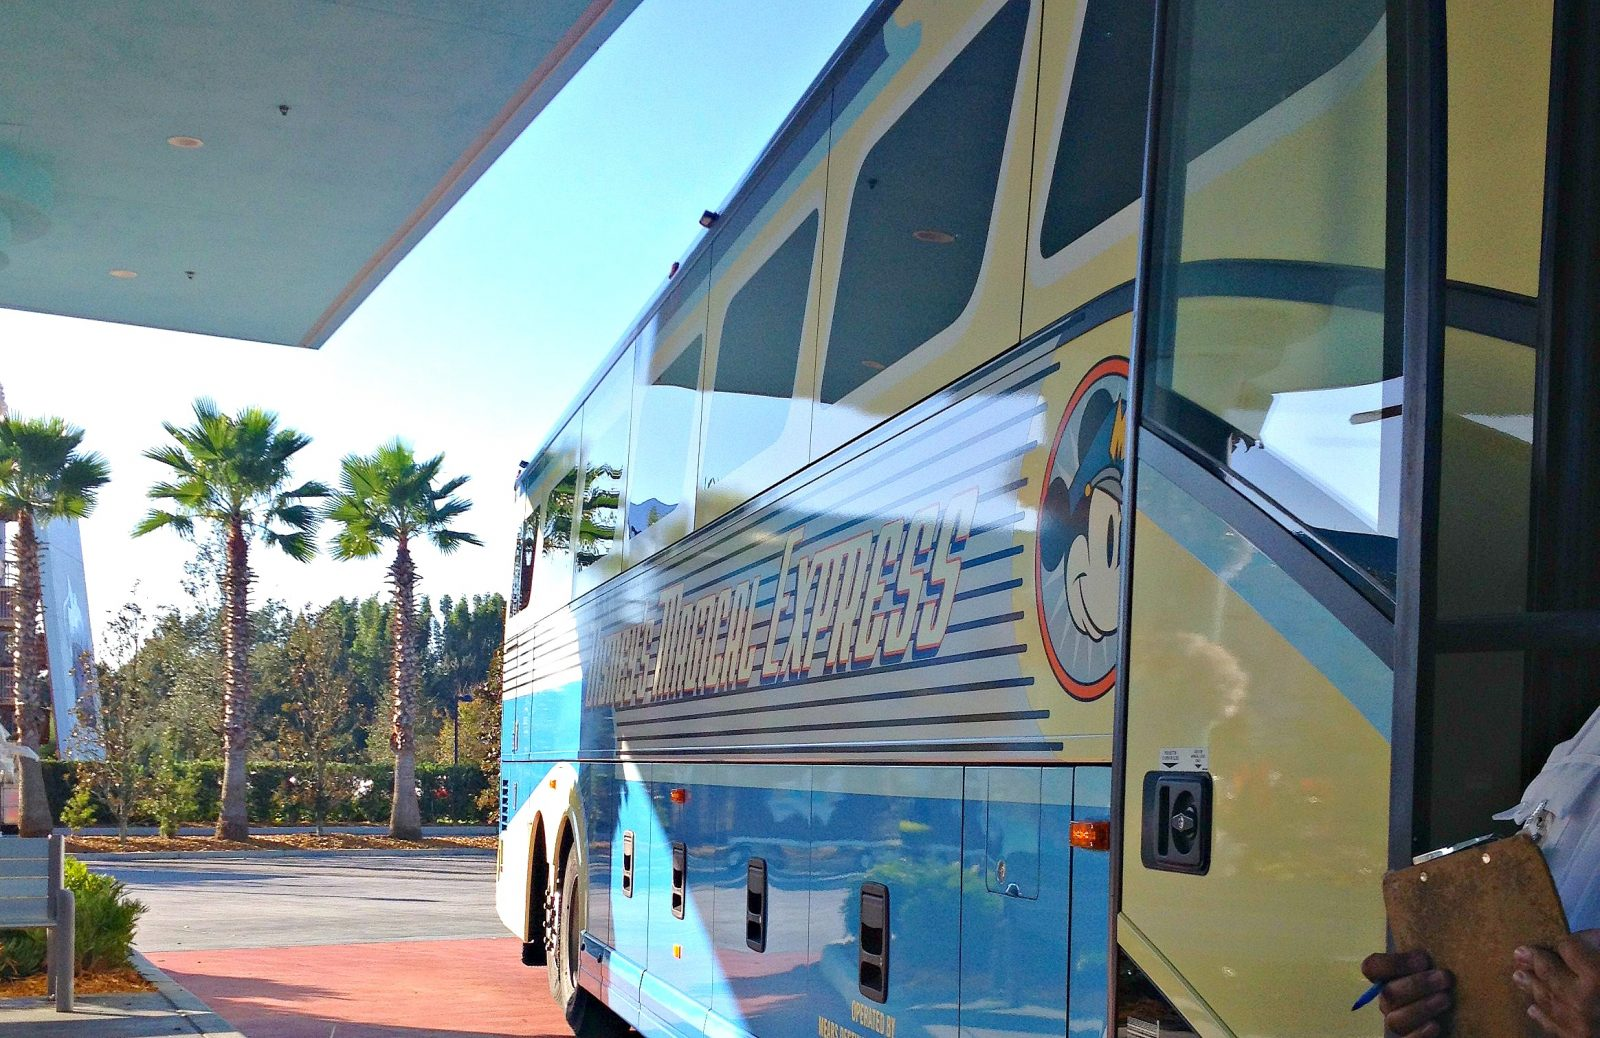 disney magic express bus, side view